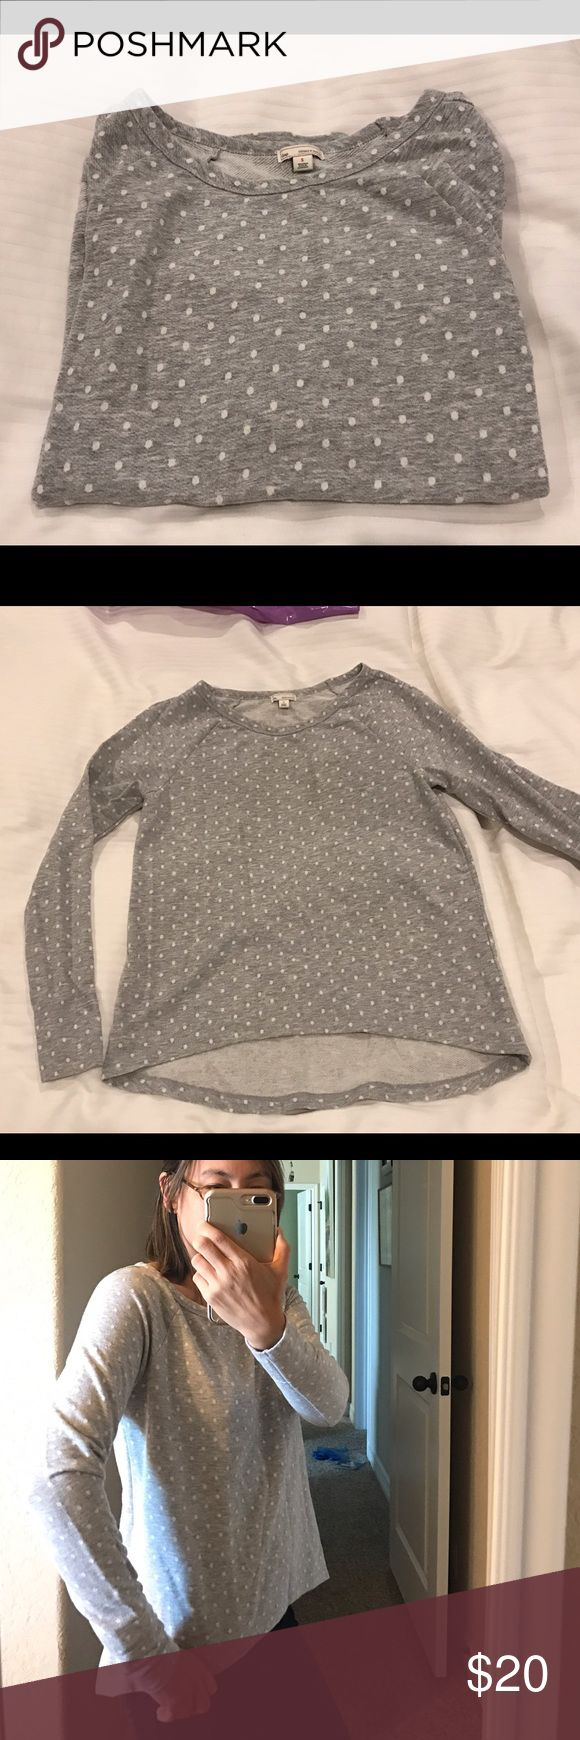 Gap Polka Dot Sweatshirt Gap lightweight sweatshirt in a sweet polka dot pattern. Light gray background with white polka dots. Size small. High-low hem line to give coverage in the rear. Great with a pair of fleece leggings. Excellent condition. GAP Tops Sweatshirts & Hoodies